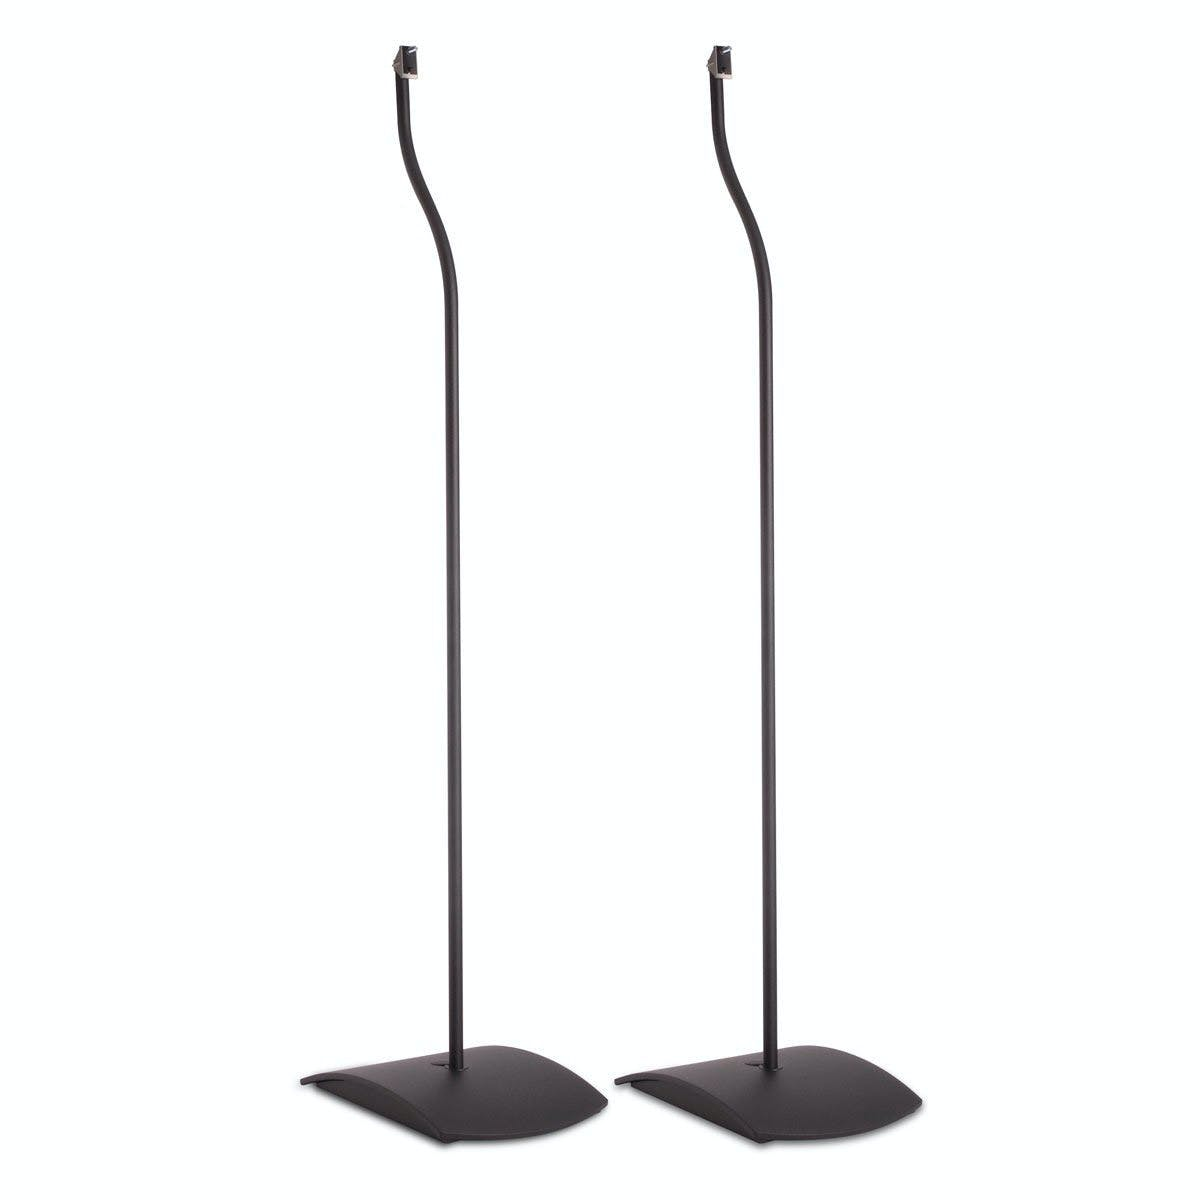 bose ufs 20 ii bl ufs 20 series ii universal floor stands in black. Black Bedroom Furniture Sets. Home Design Ideas